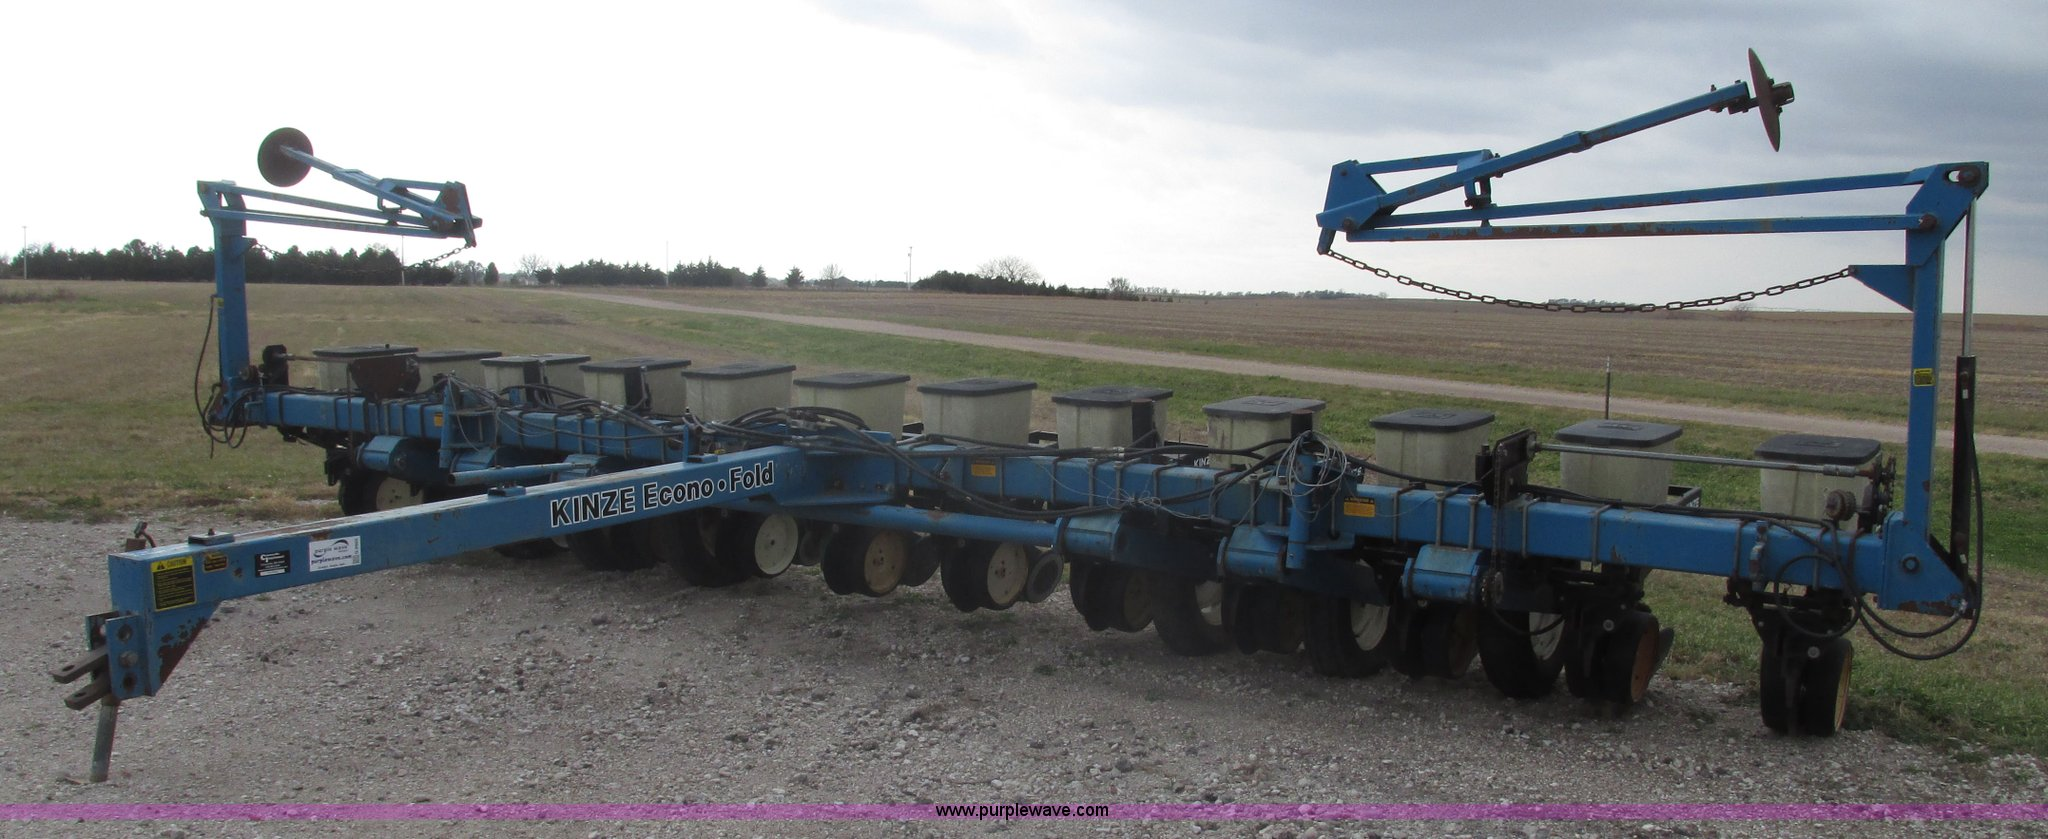 1995 Kinze 2200 Flex Econo Fold Planter Item G9903 Sold